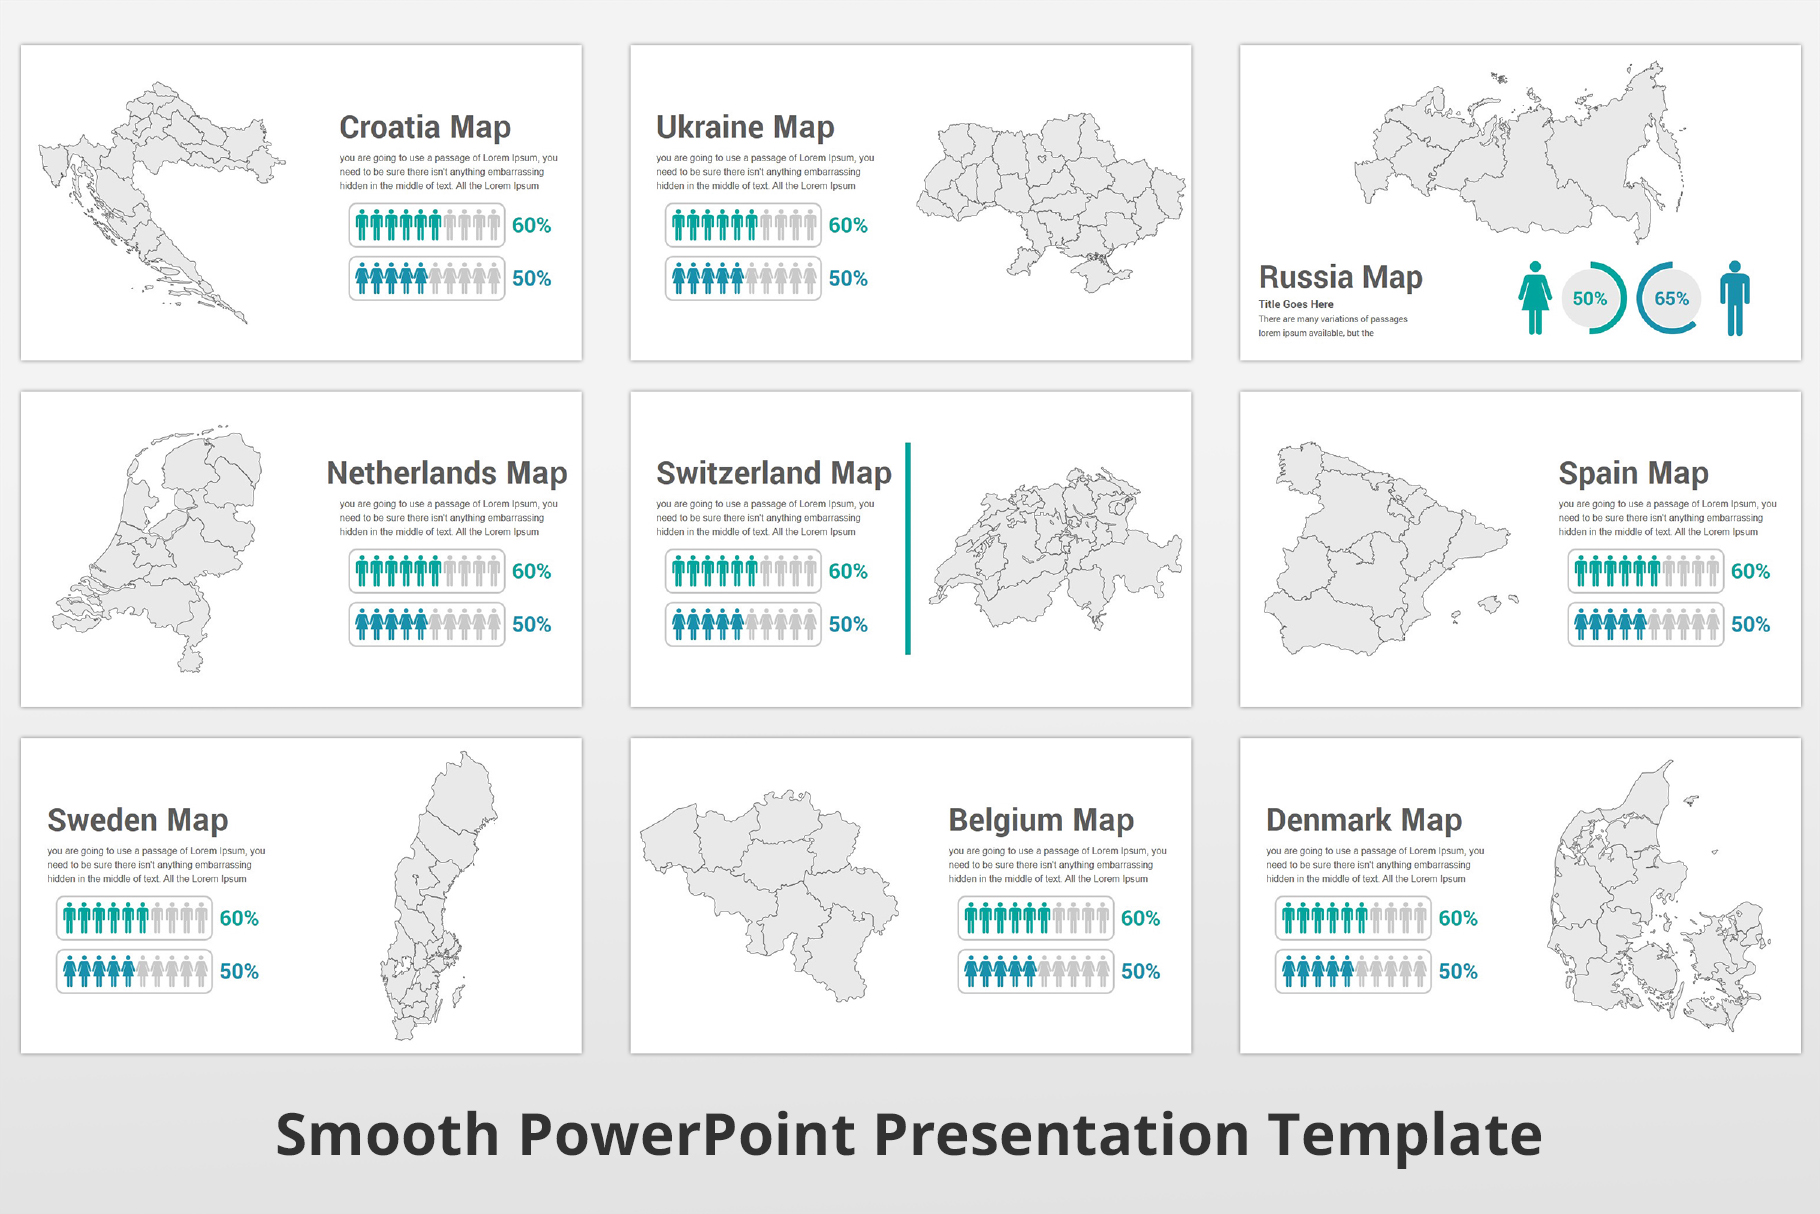 Smooth multipurpose PowerPoint Presentation Template example image 22